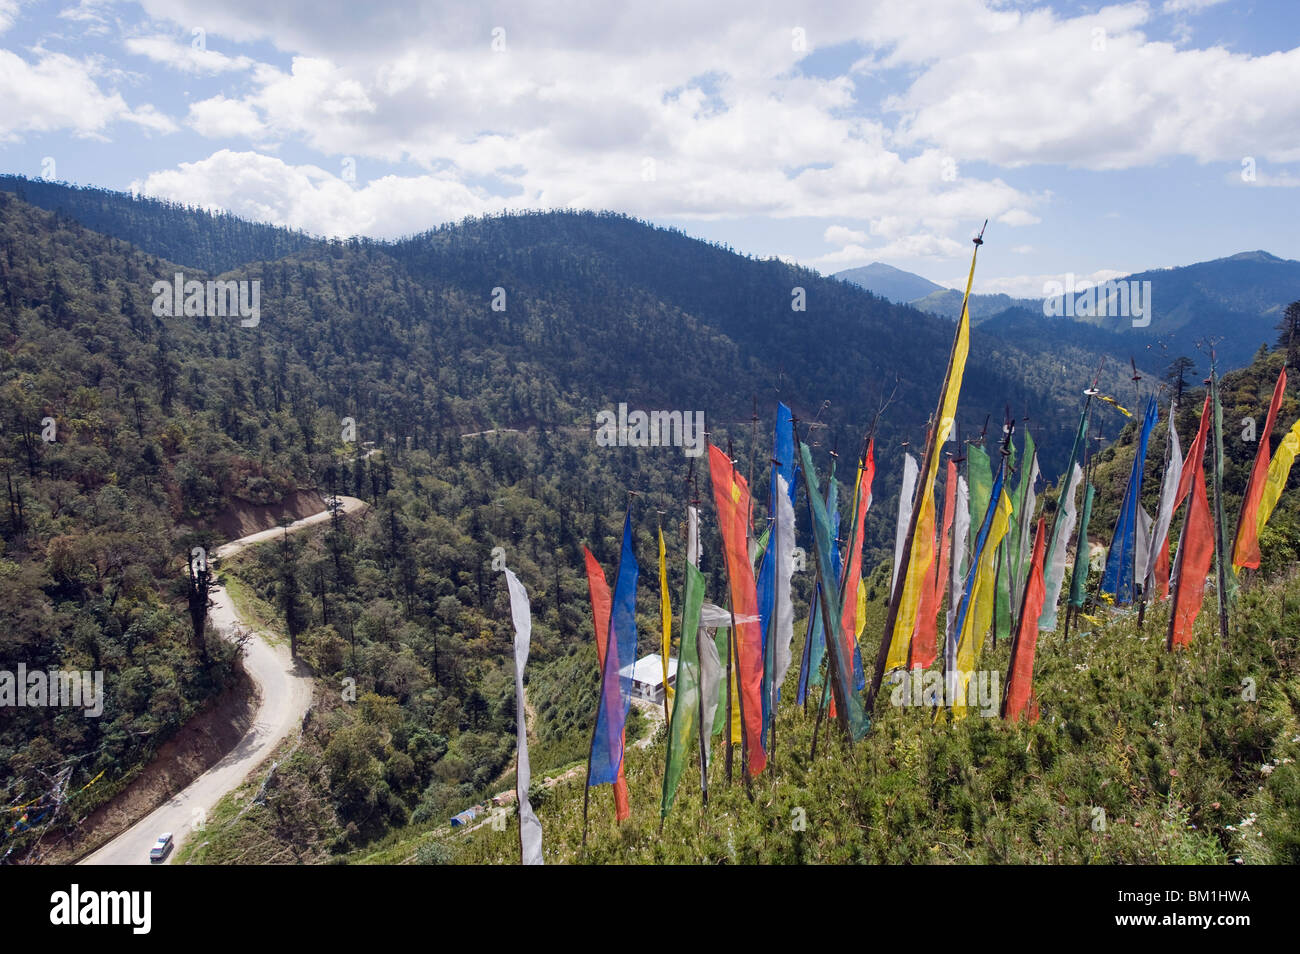 Prayer flags at Pele La pass, 3420m, Black Mountains, Bhutan, Himalayas, Asia - Stock Image